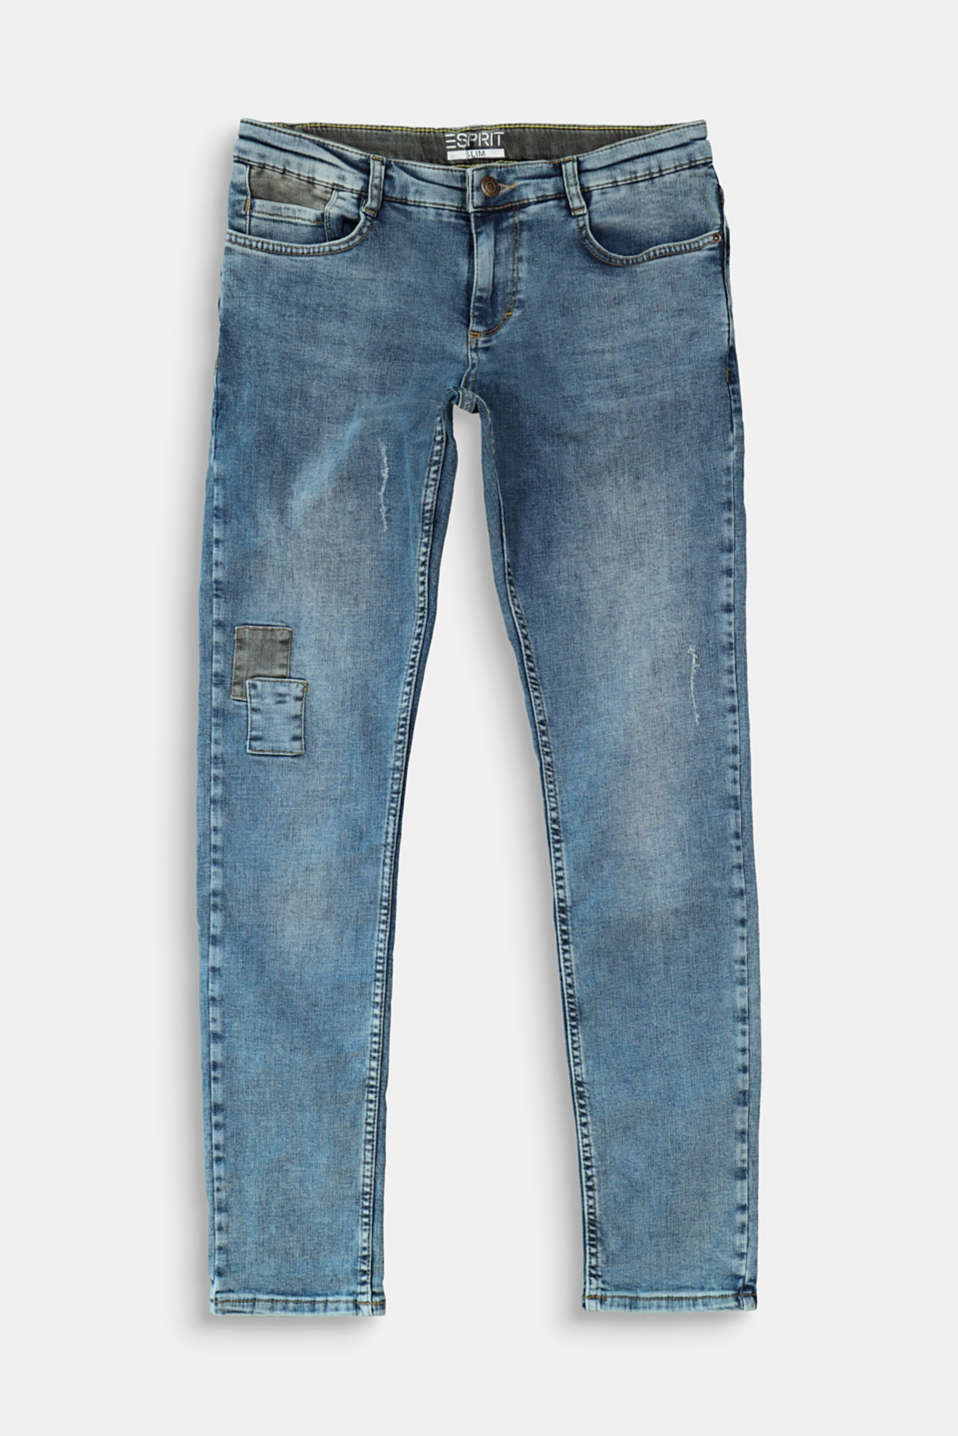 Esprit - Jeans i used-look med patches